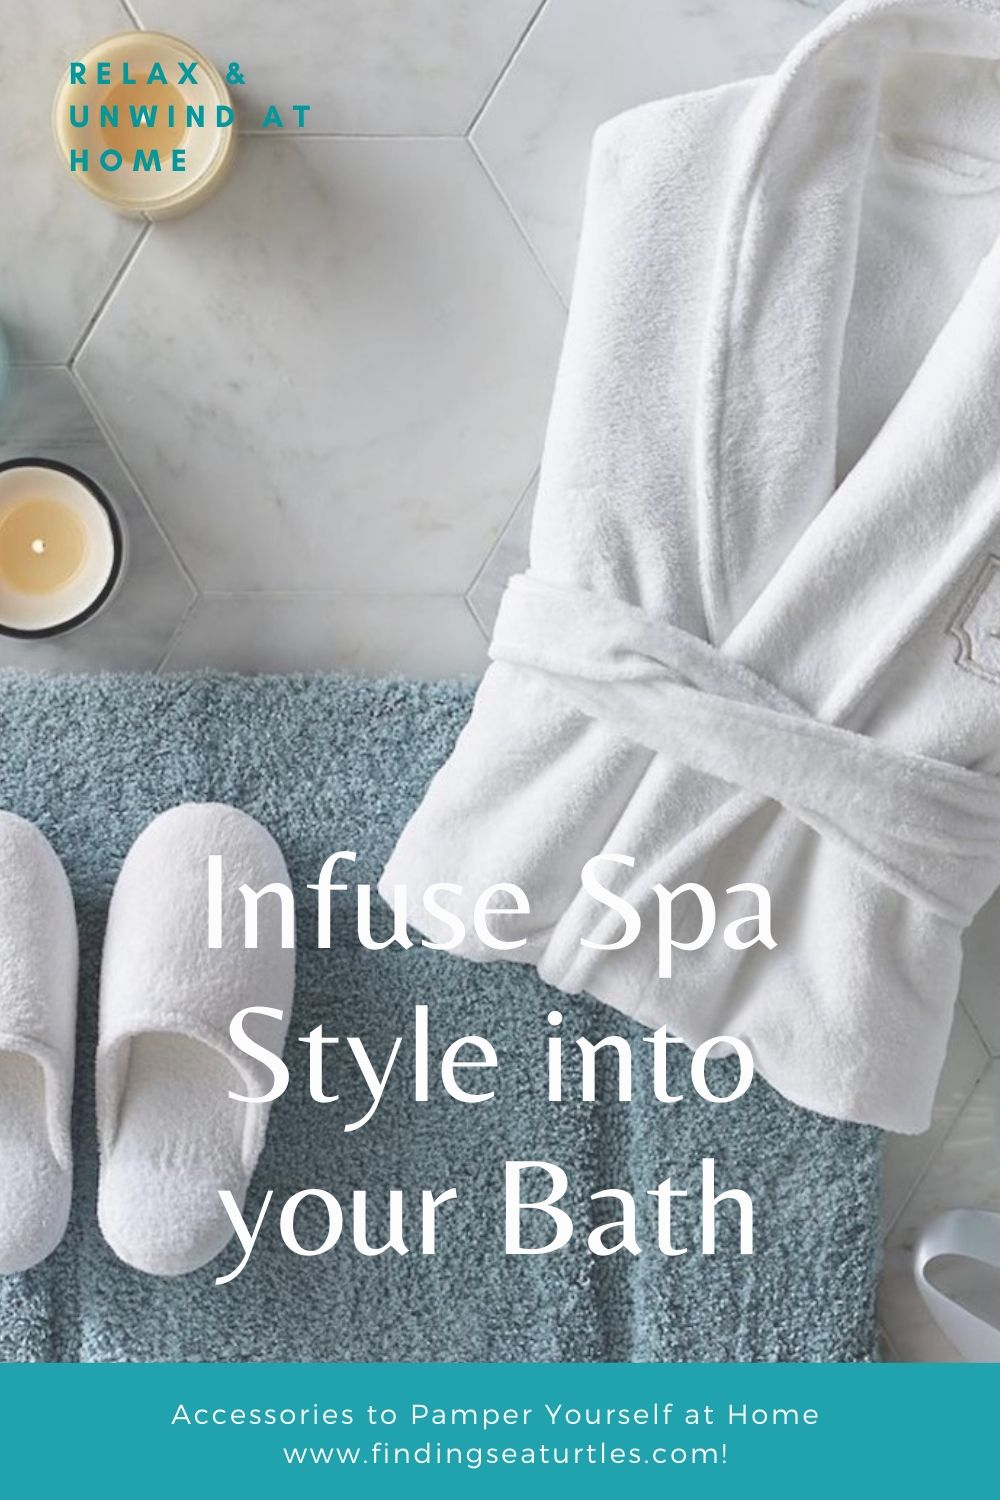 Relax Unwind at Home Infuse Spa Style into your Bath #Spa #bathroom #HomeSpa #PamperYourself #SpaAccessories #MeTime #BathSpa #DIYHomeSpa #Relax #Soothing